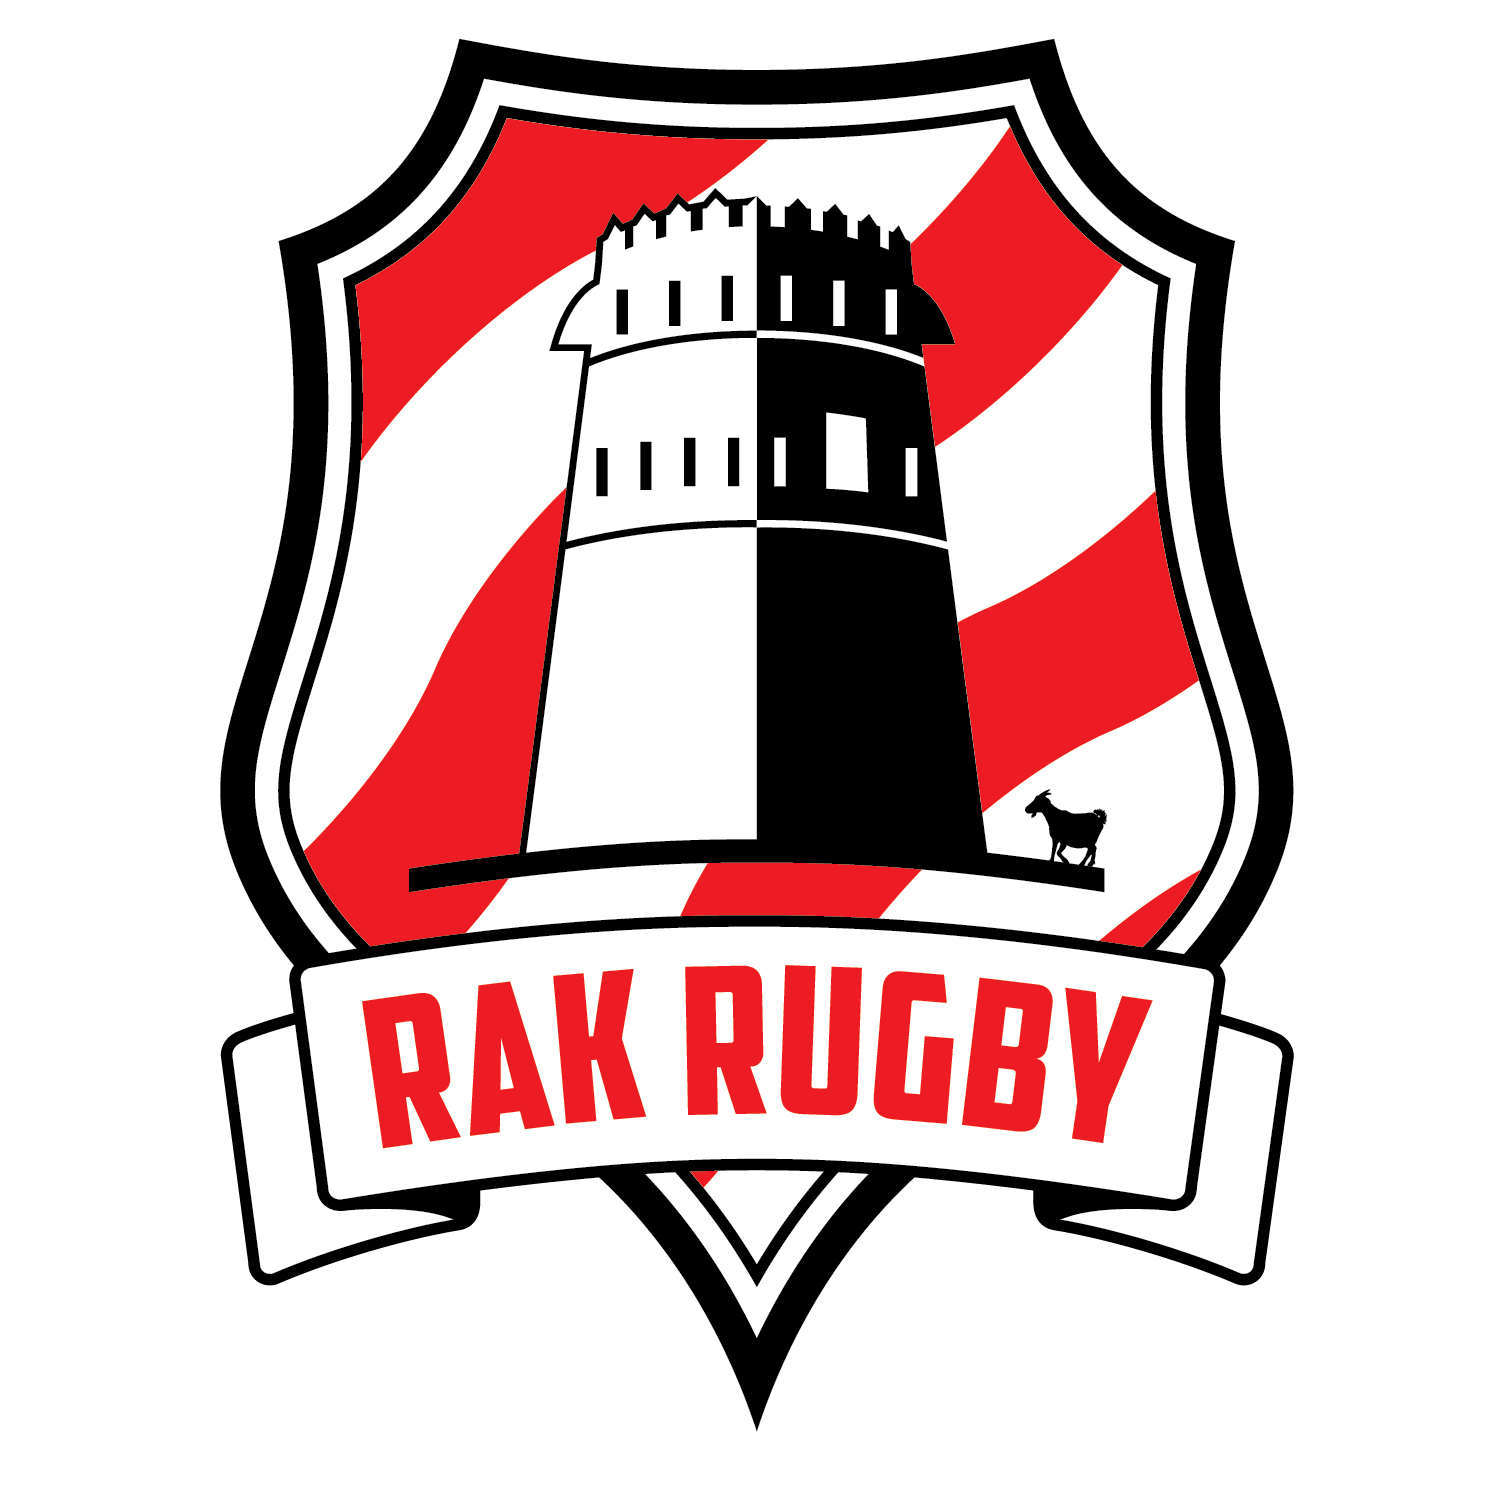 RAK Rugby • Ras al Khaimah • Home of Rugby in the Northern.